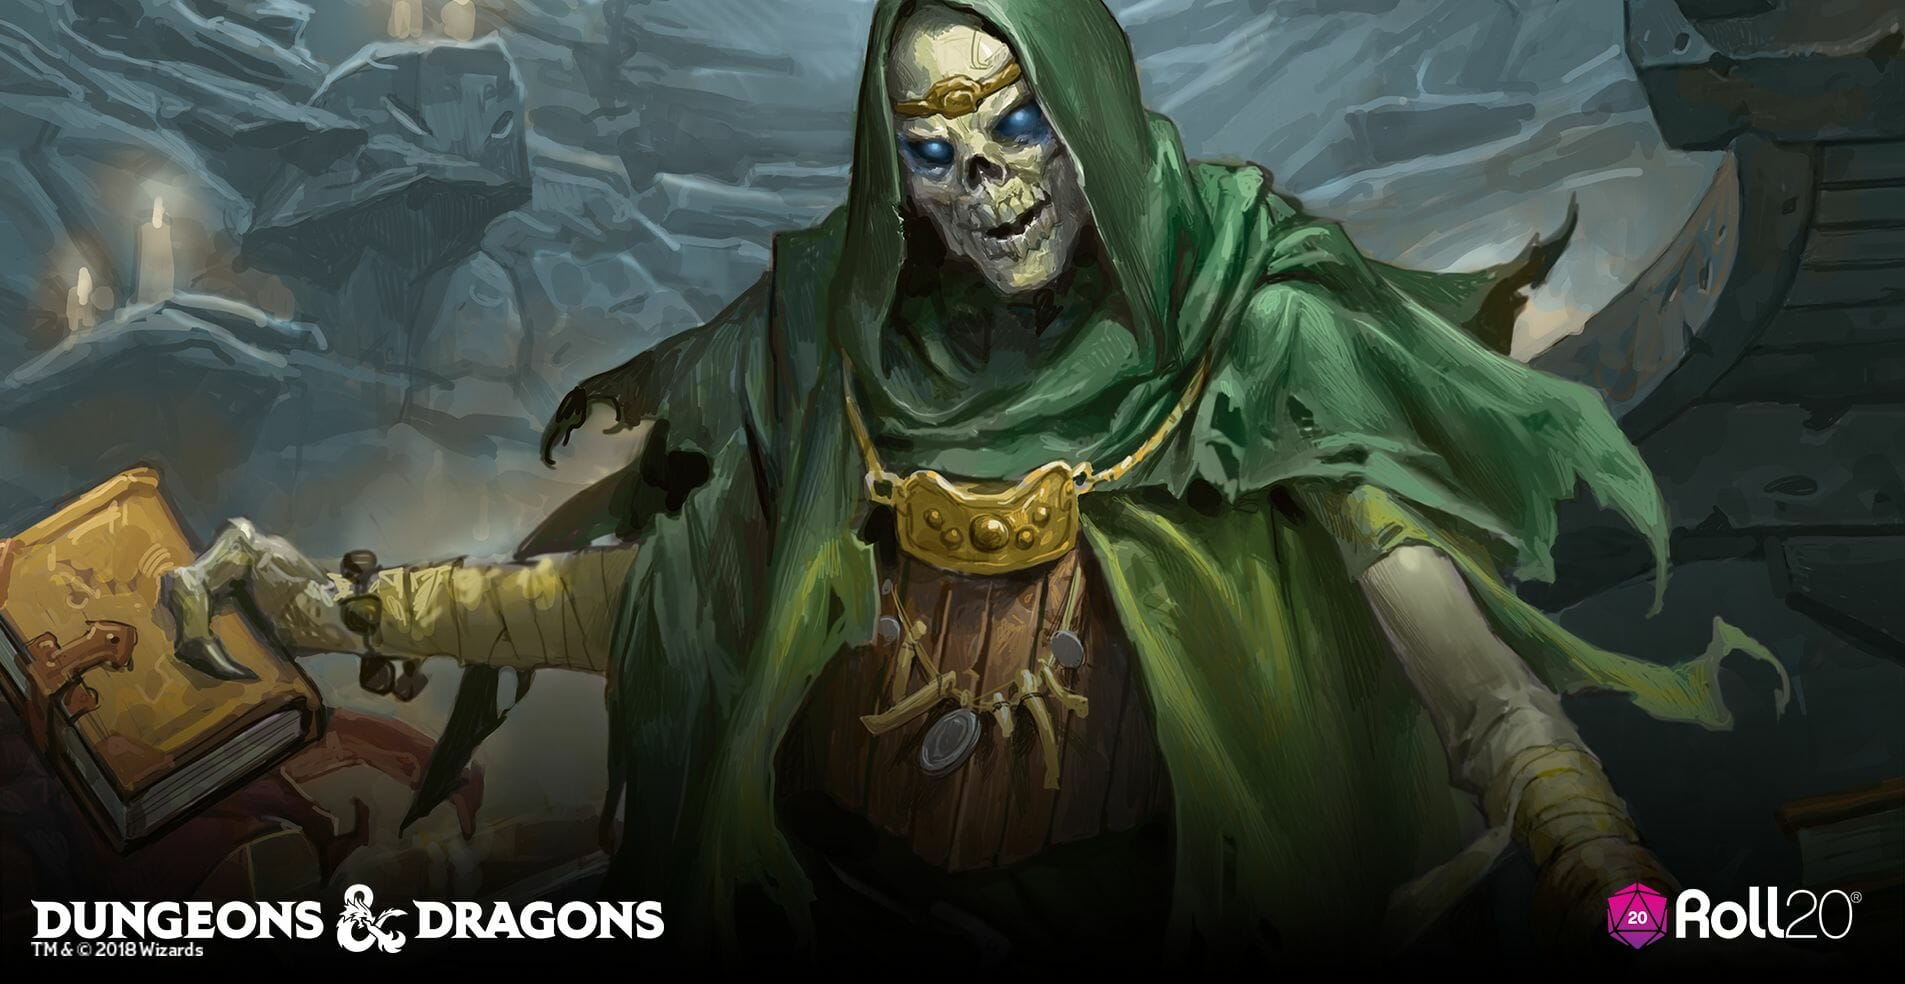 Waterdeep: Dungeon of the Mad Mage art